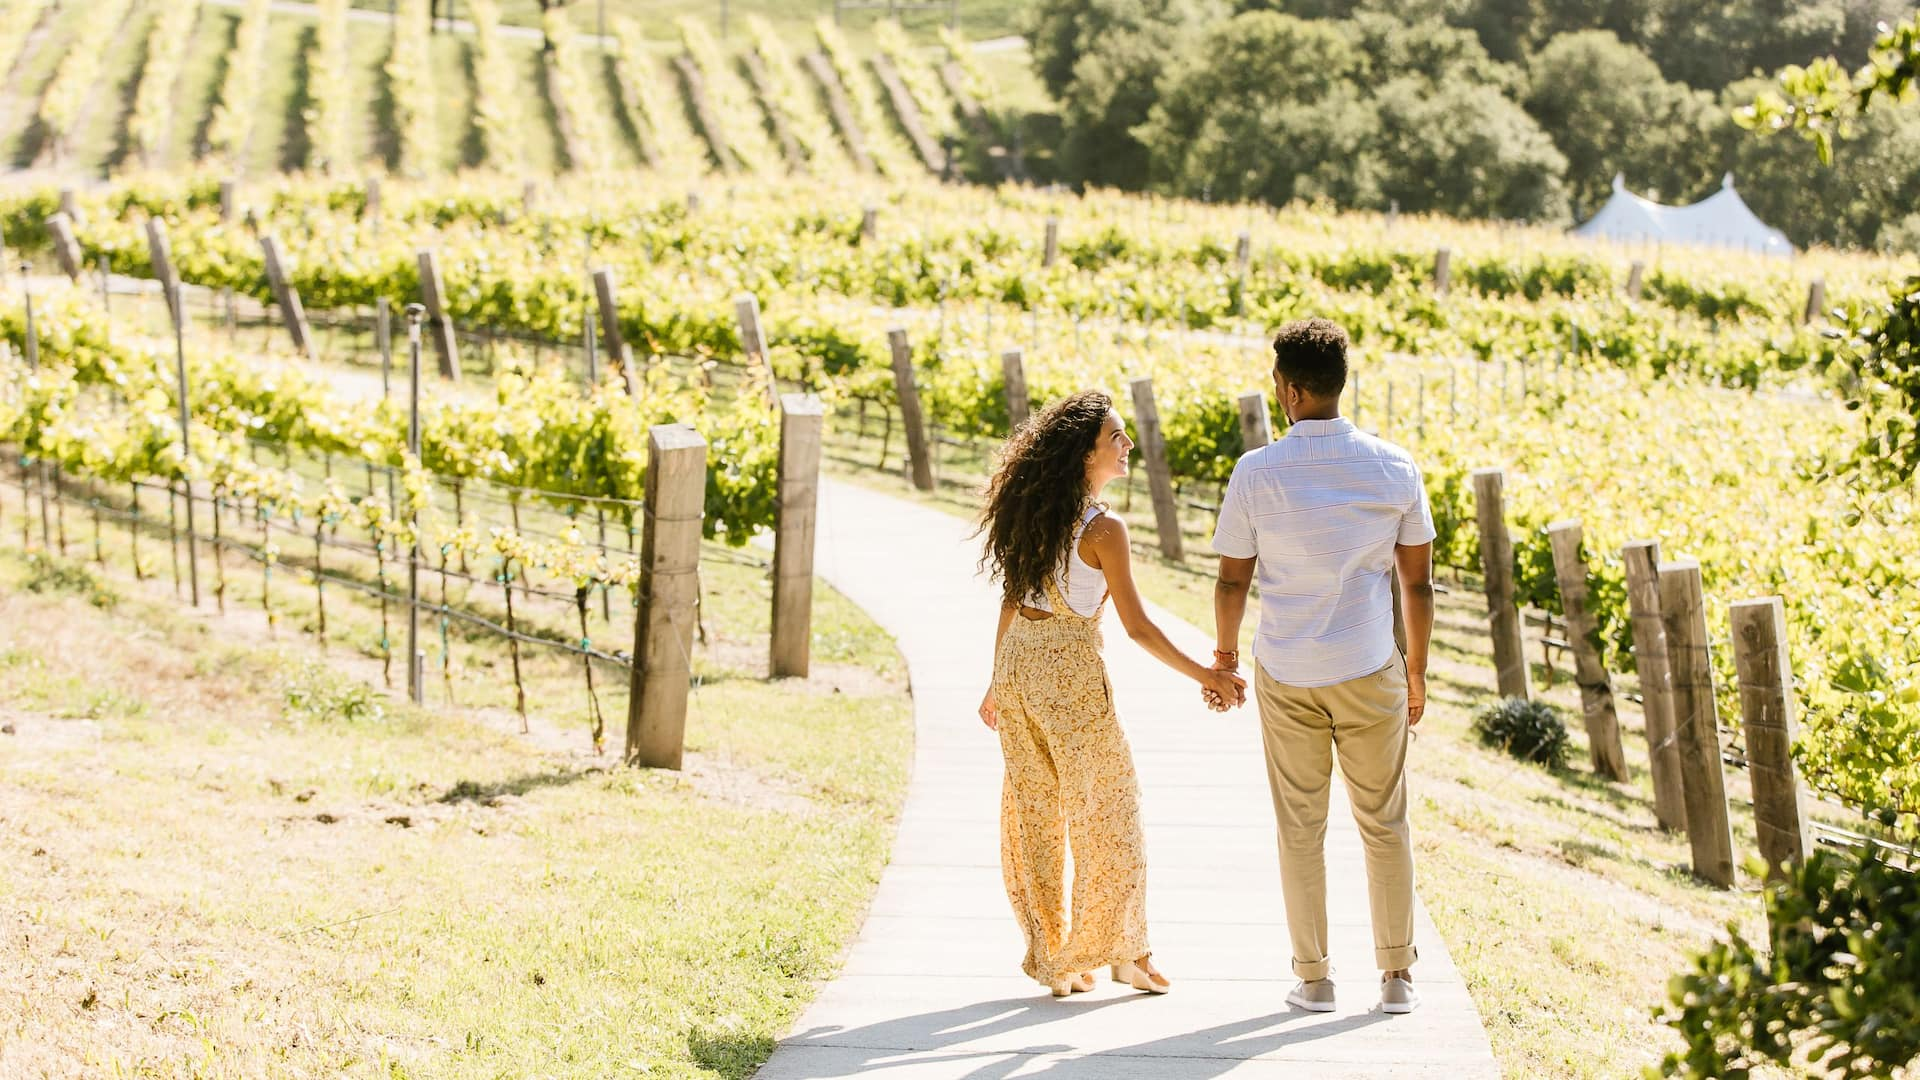 SJCJC_P137_Lifestyle_Vineyard_Walk_Couple